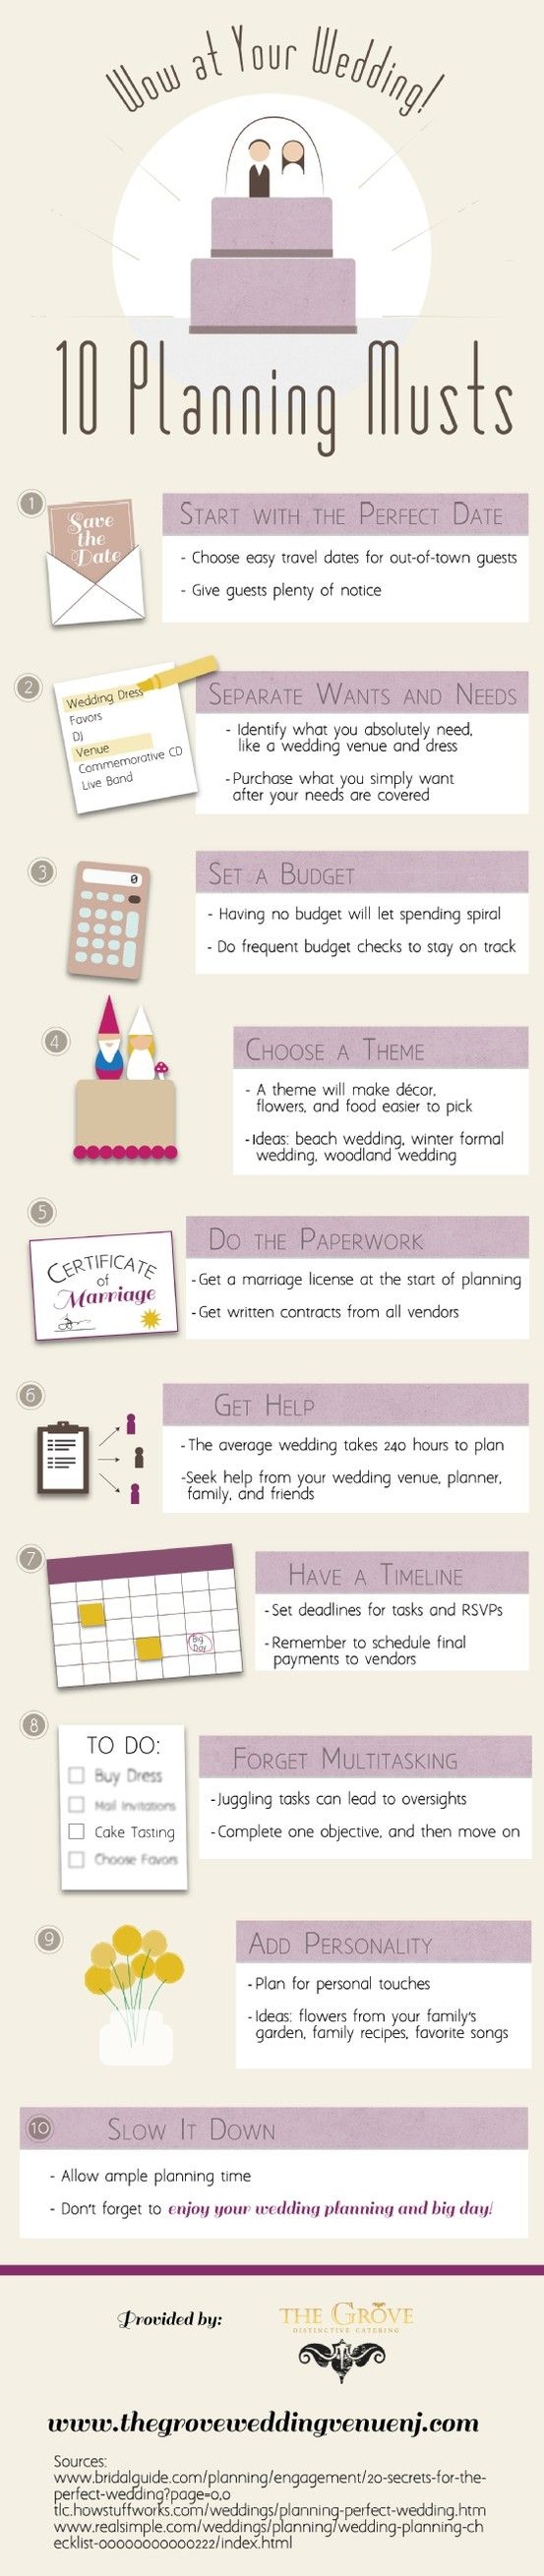 When budgeting for a wedding, start with must-have items like the dress and the wedding venue. This keeps the planning on track and, hopefully, leaves room to include wedding wants. Check out this infographic from a wedding venue in New Jersey to learn more.